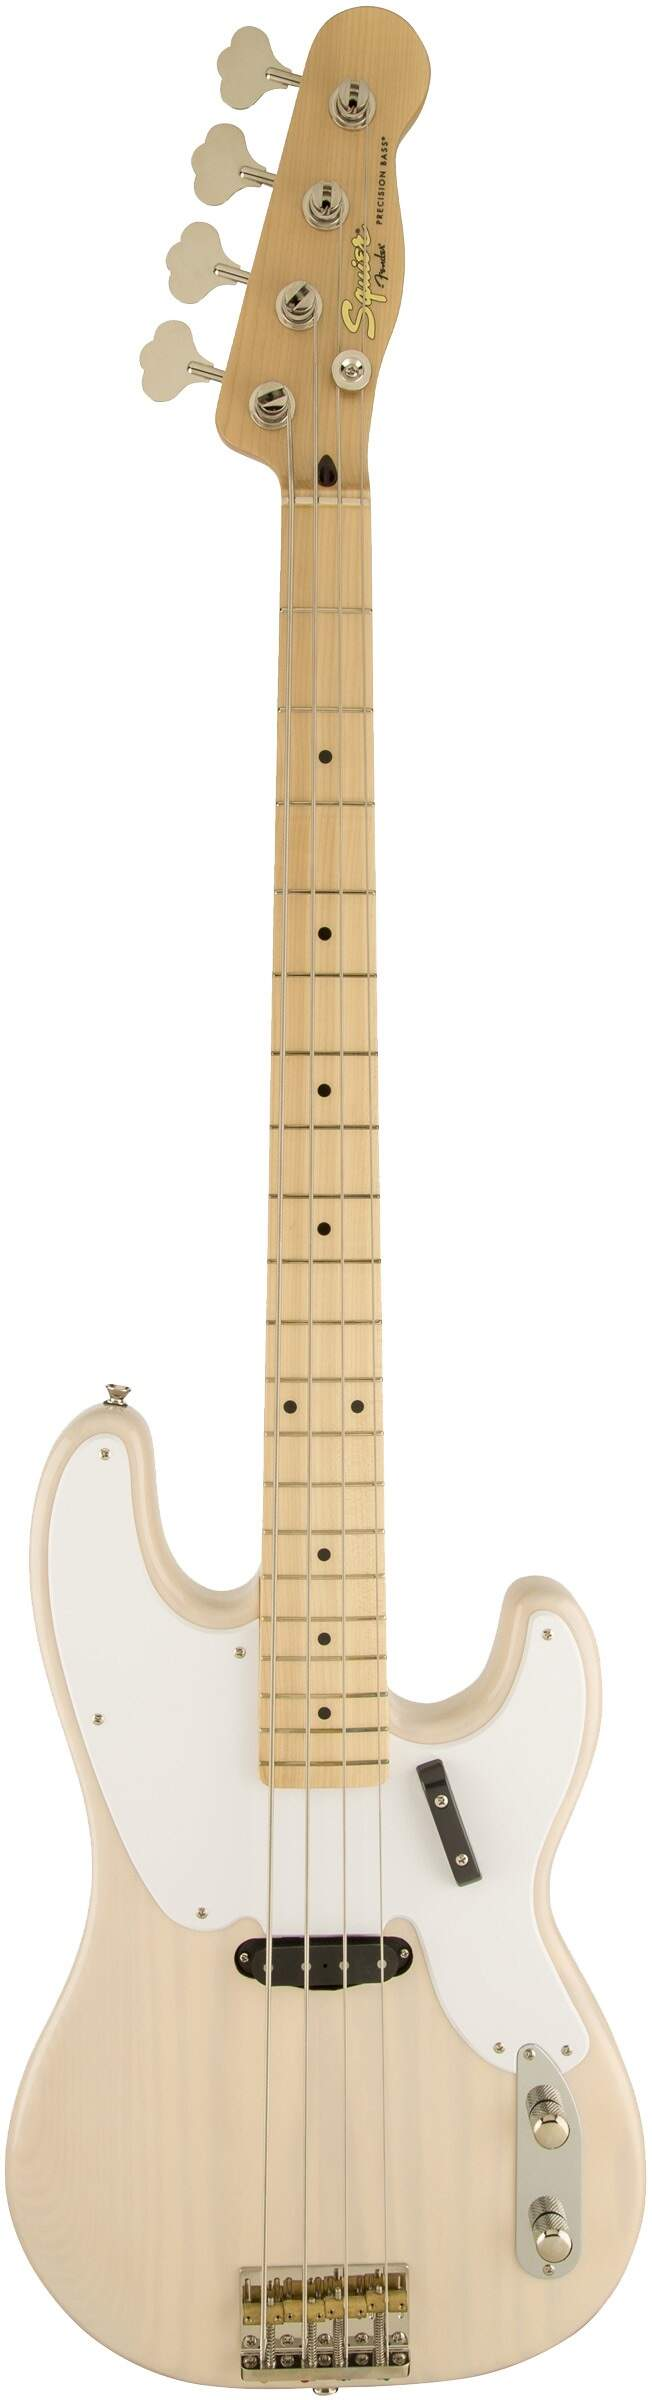 Contra Baixo Fender 030 3080 Squier Classic Vibe P. Bass 50S White Blonde.